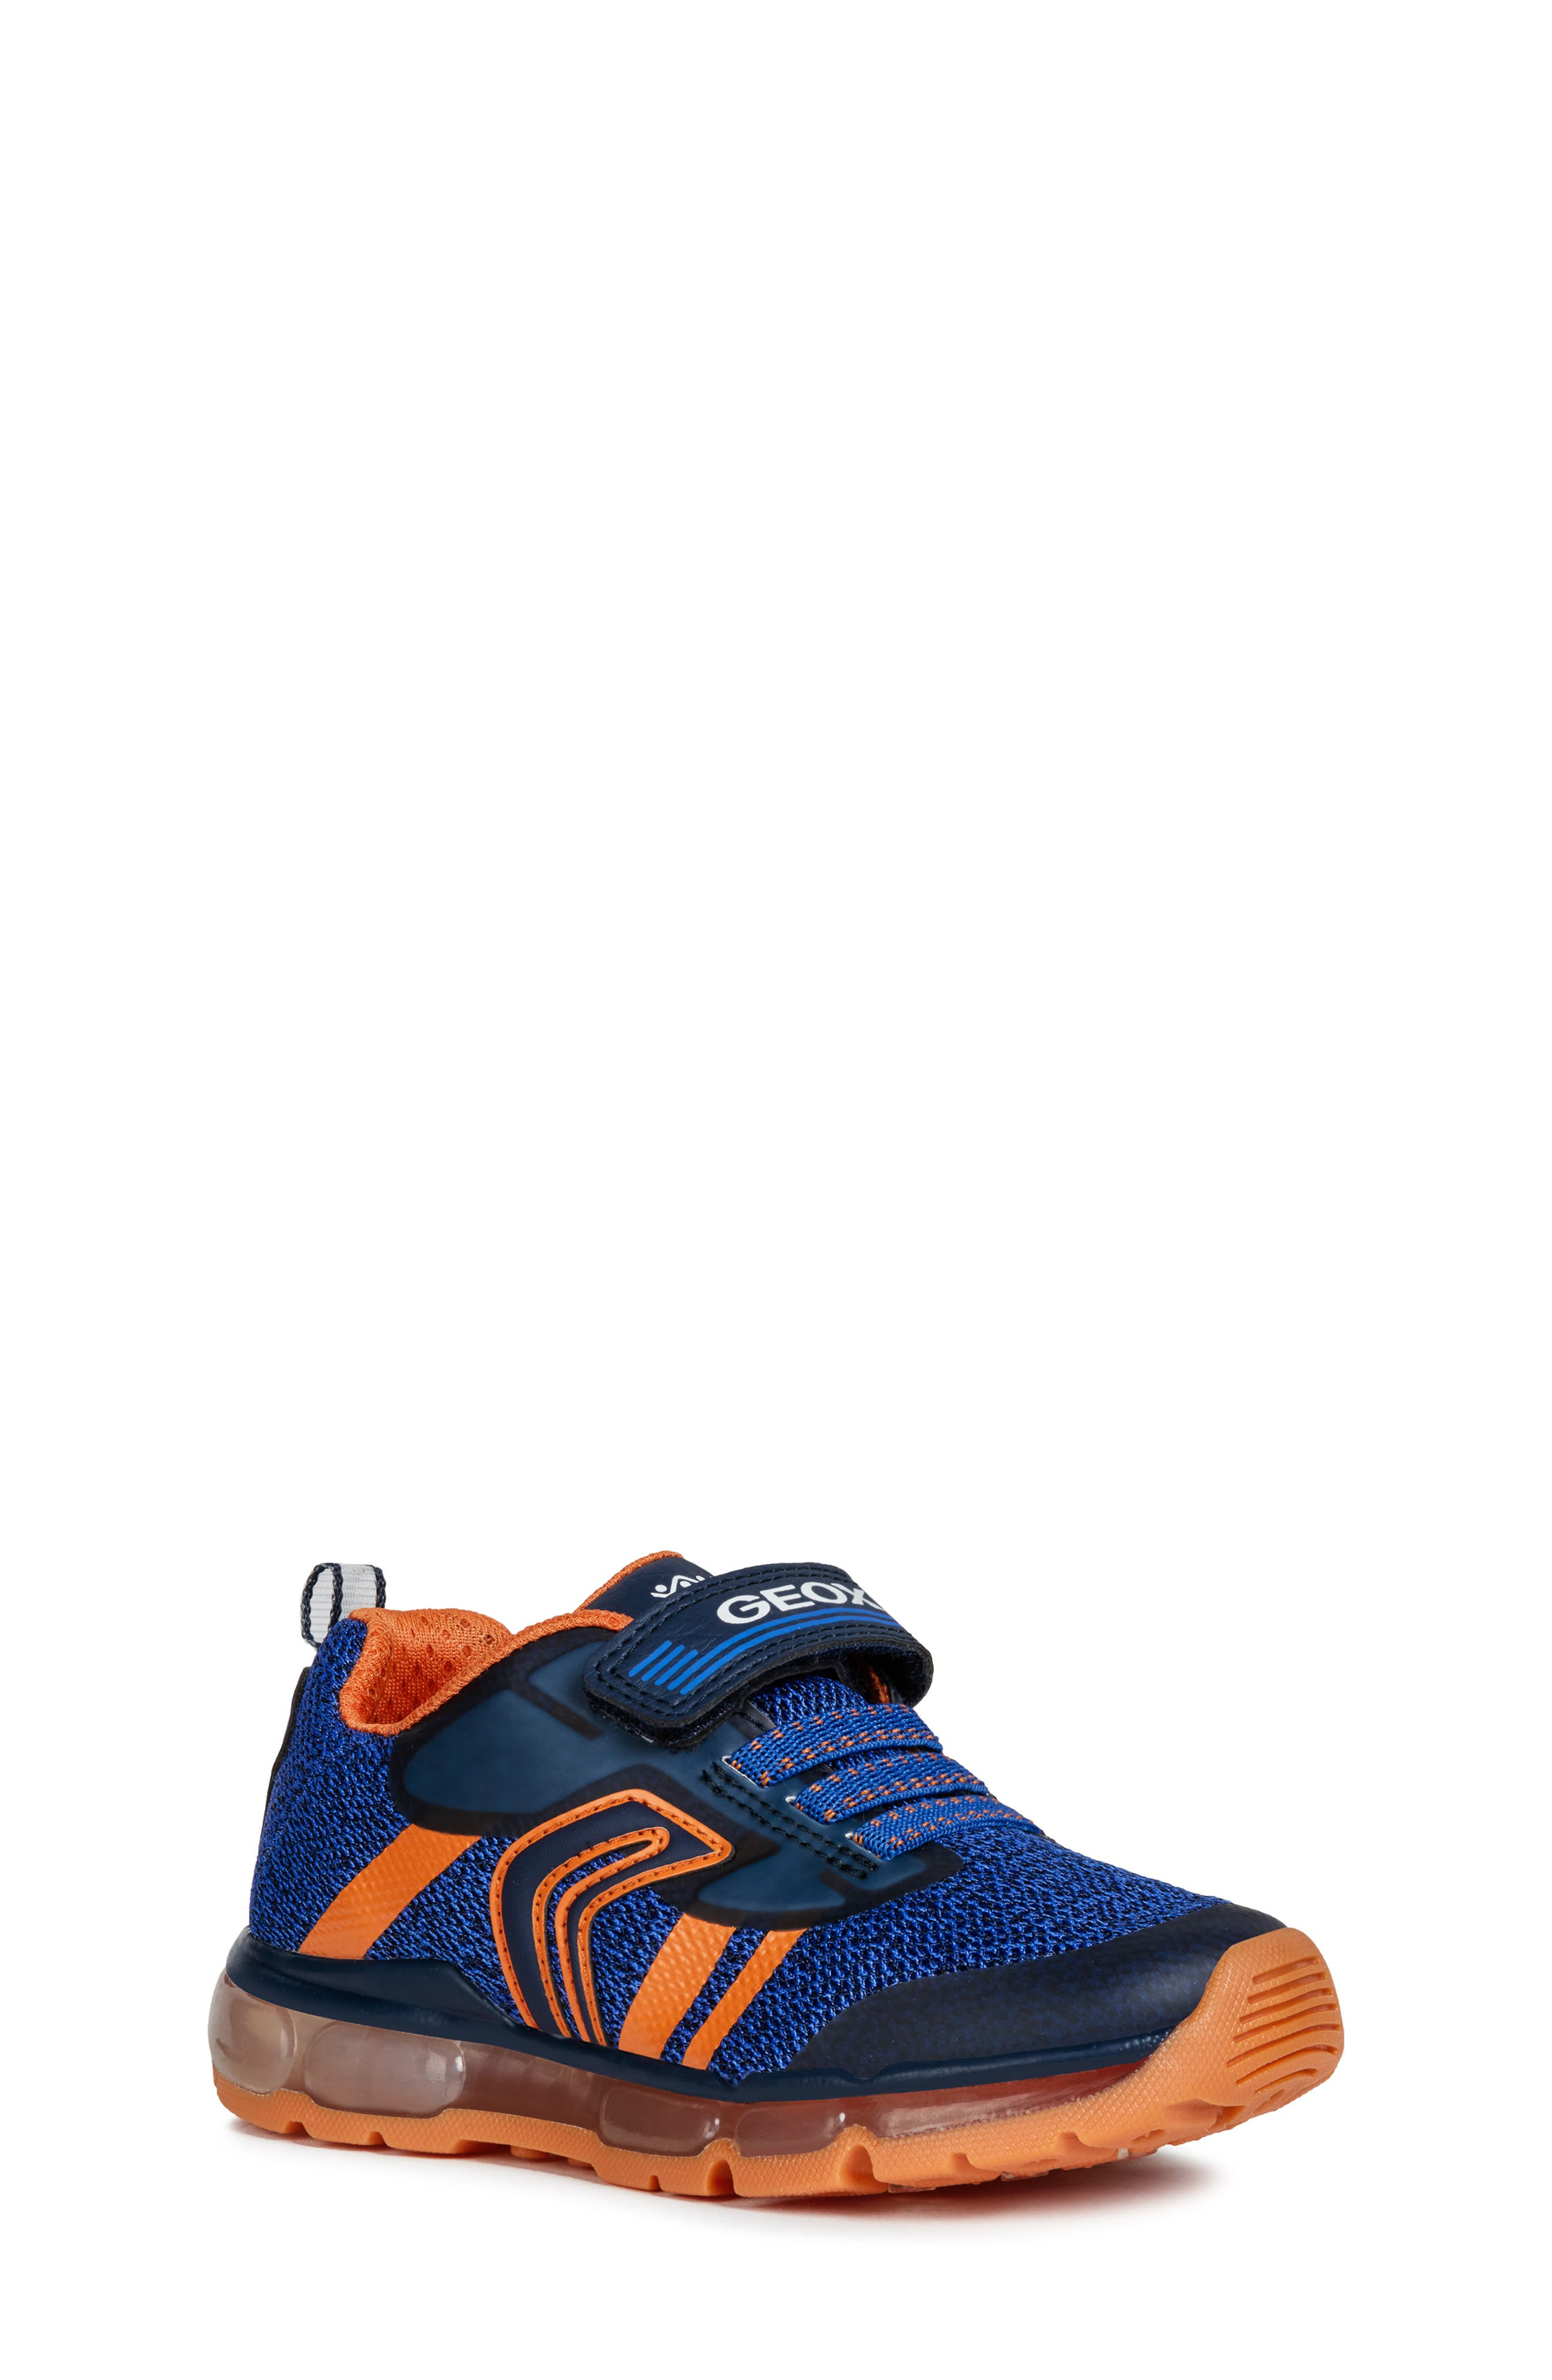 GEOX, Android 19 Light-Up Sneaker, Main thumbnail 1, color, NAVY/ ORANGE